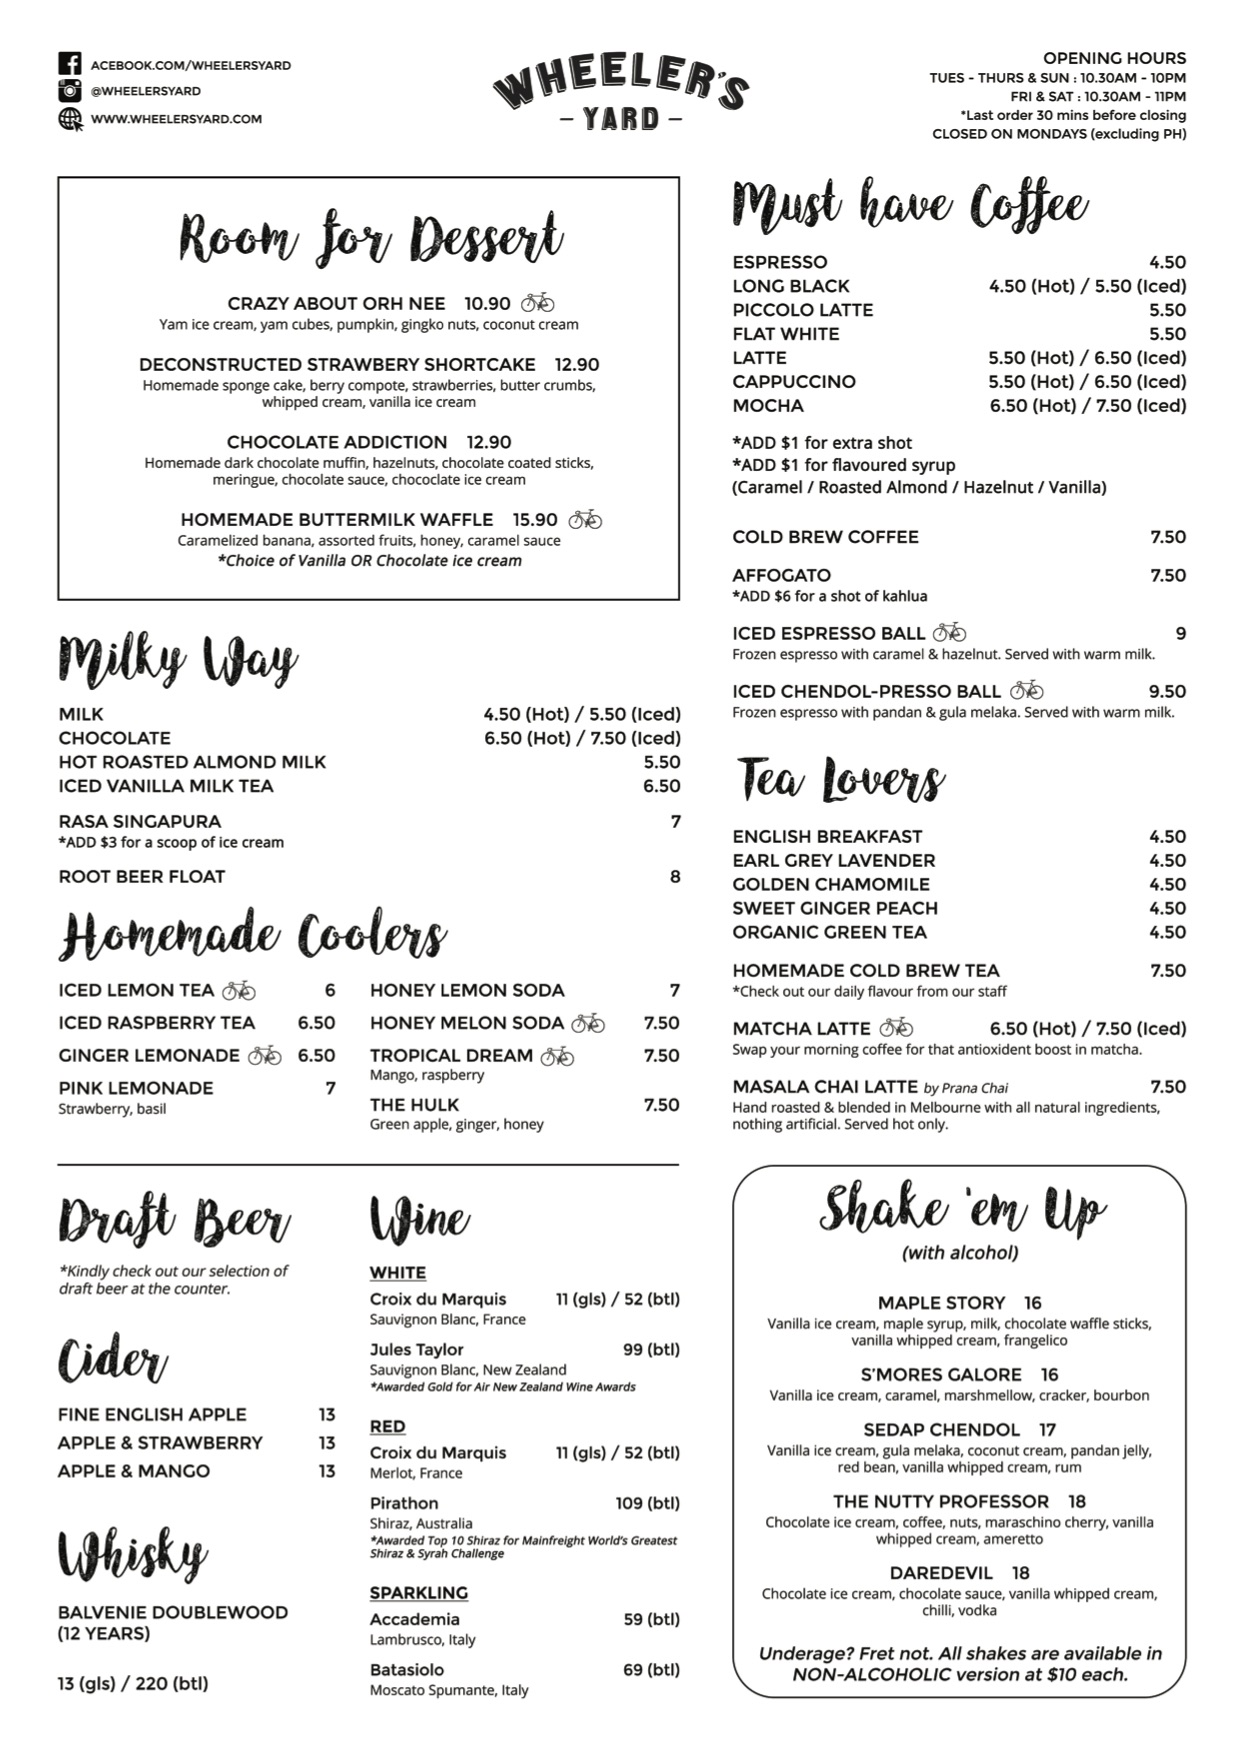 Wheeler's Yard - Menu Pg2 - TREAT